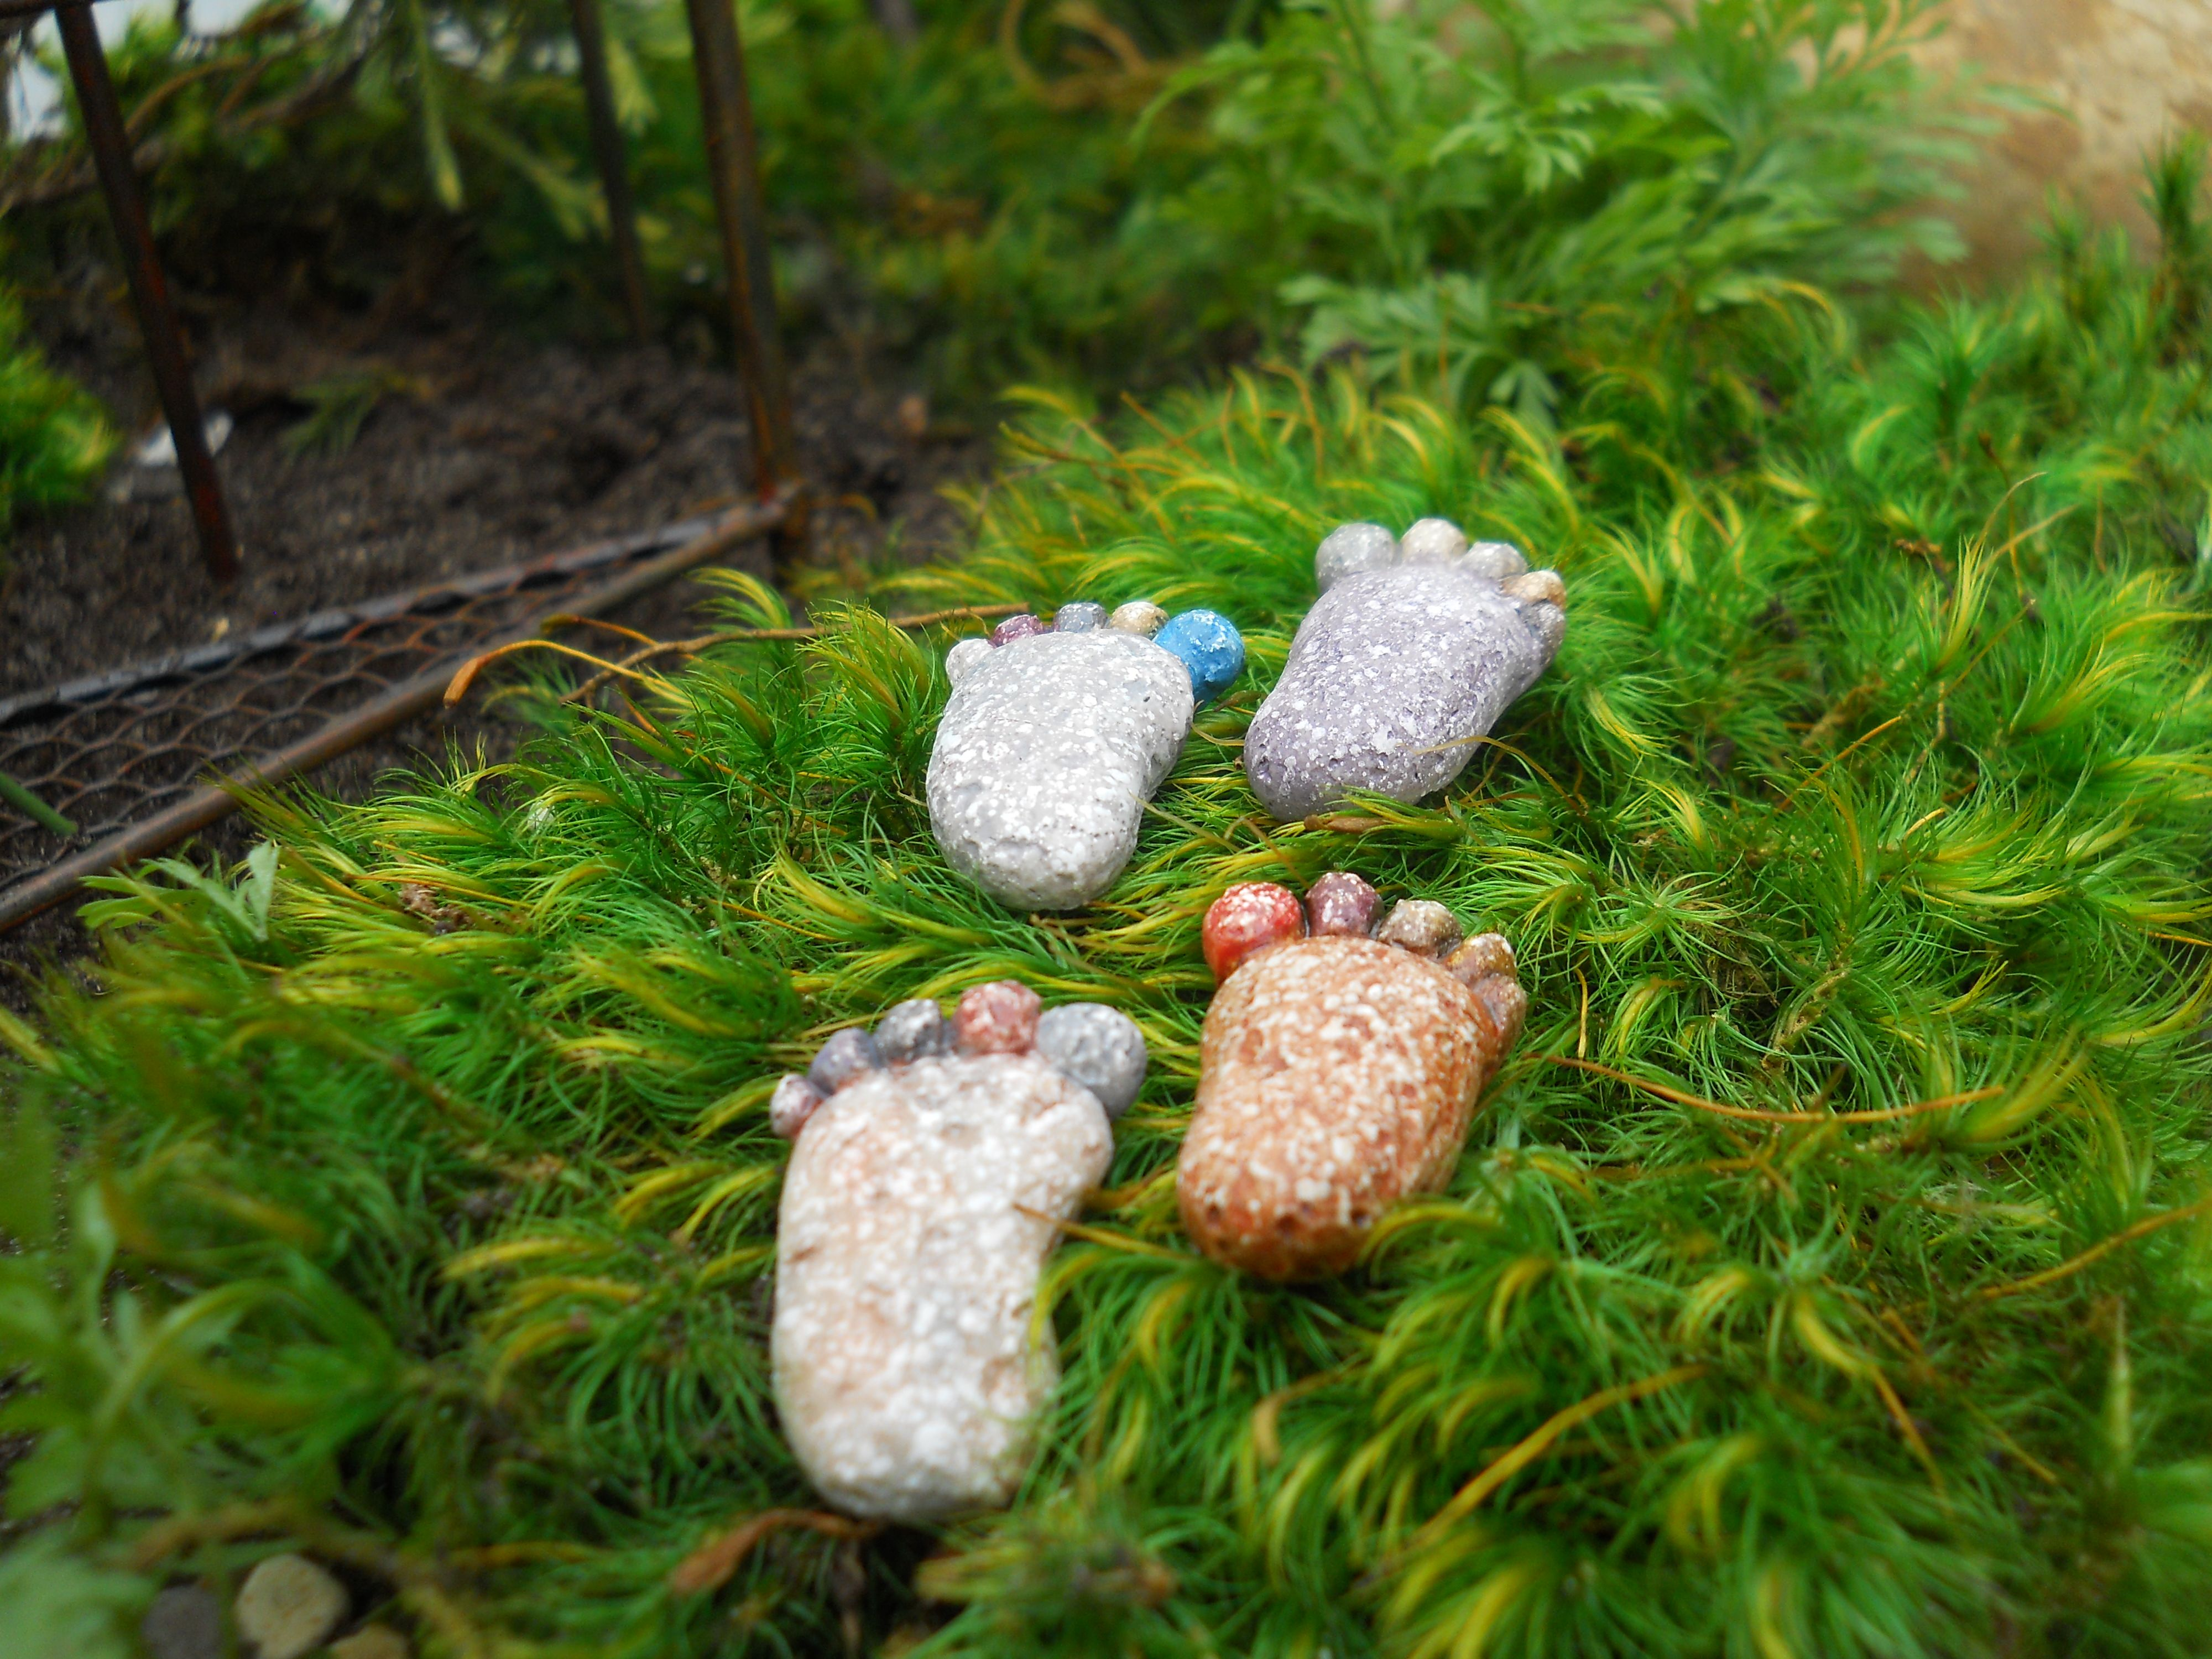 A set of four tiny footprint stepping stones to guide your fairies home.